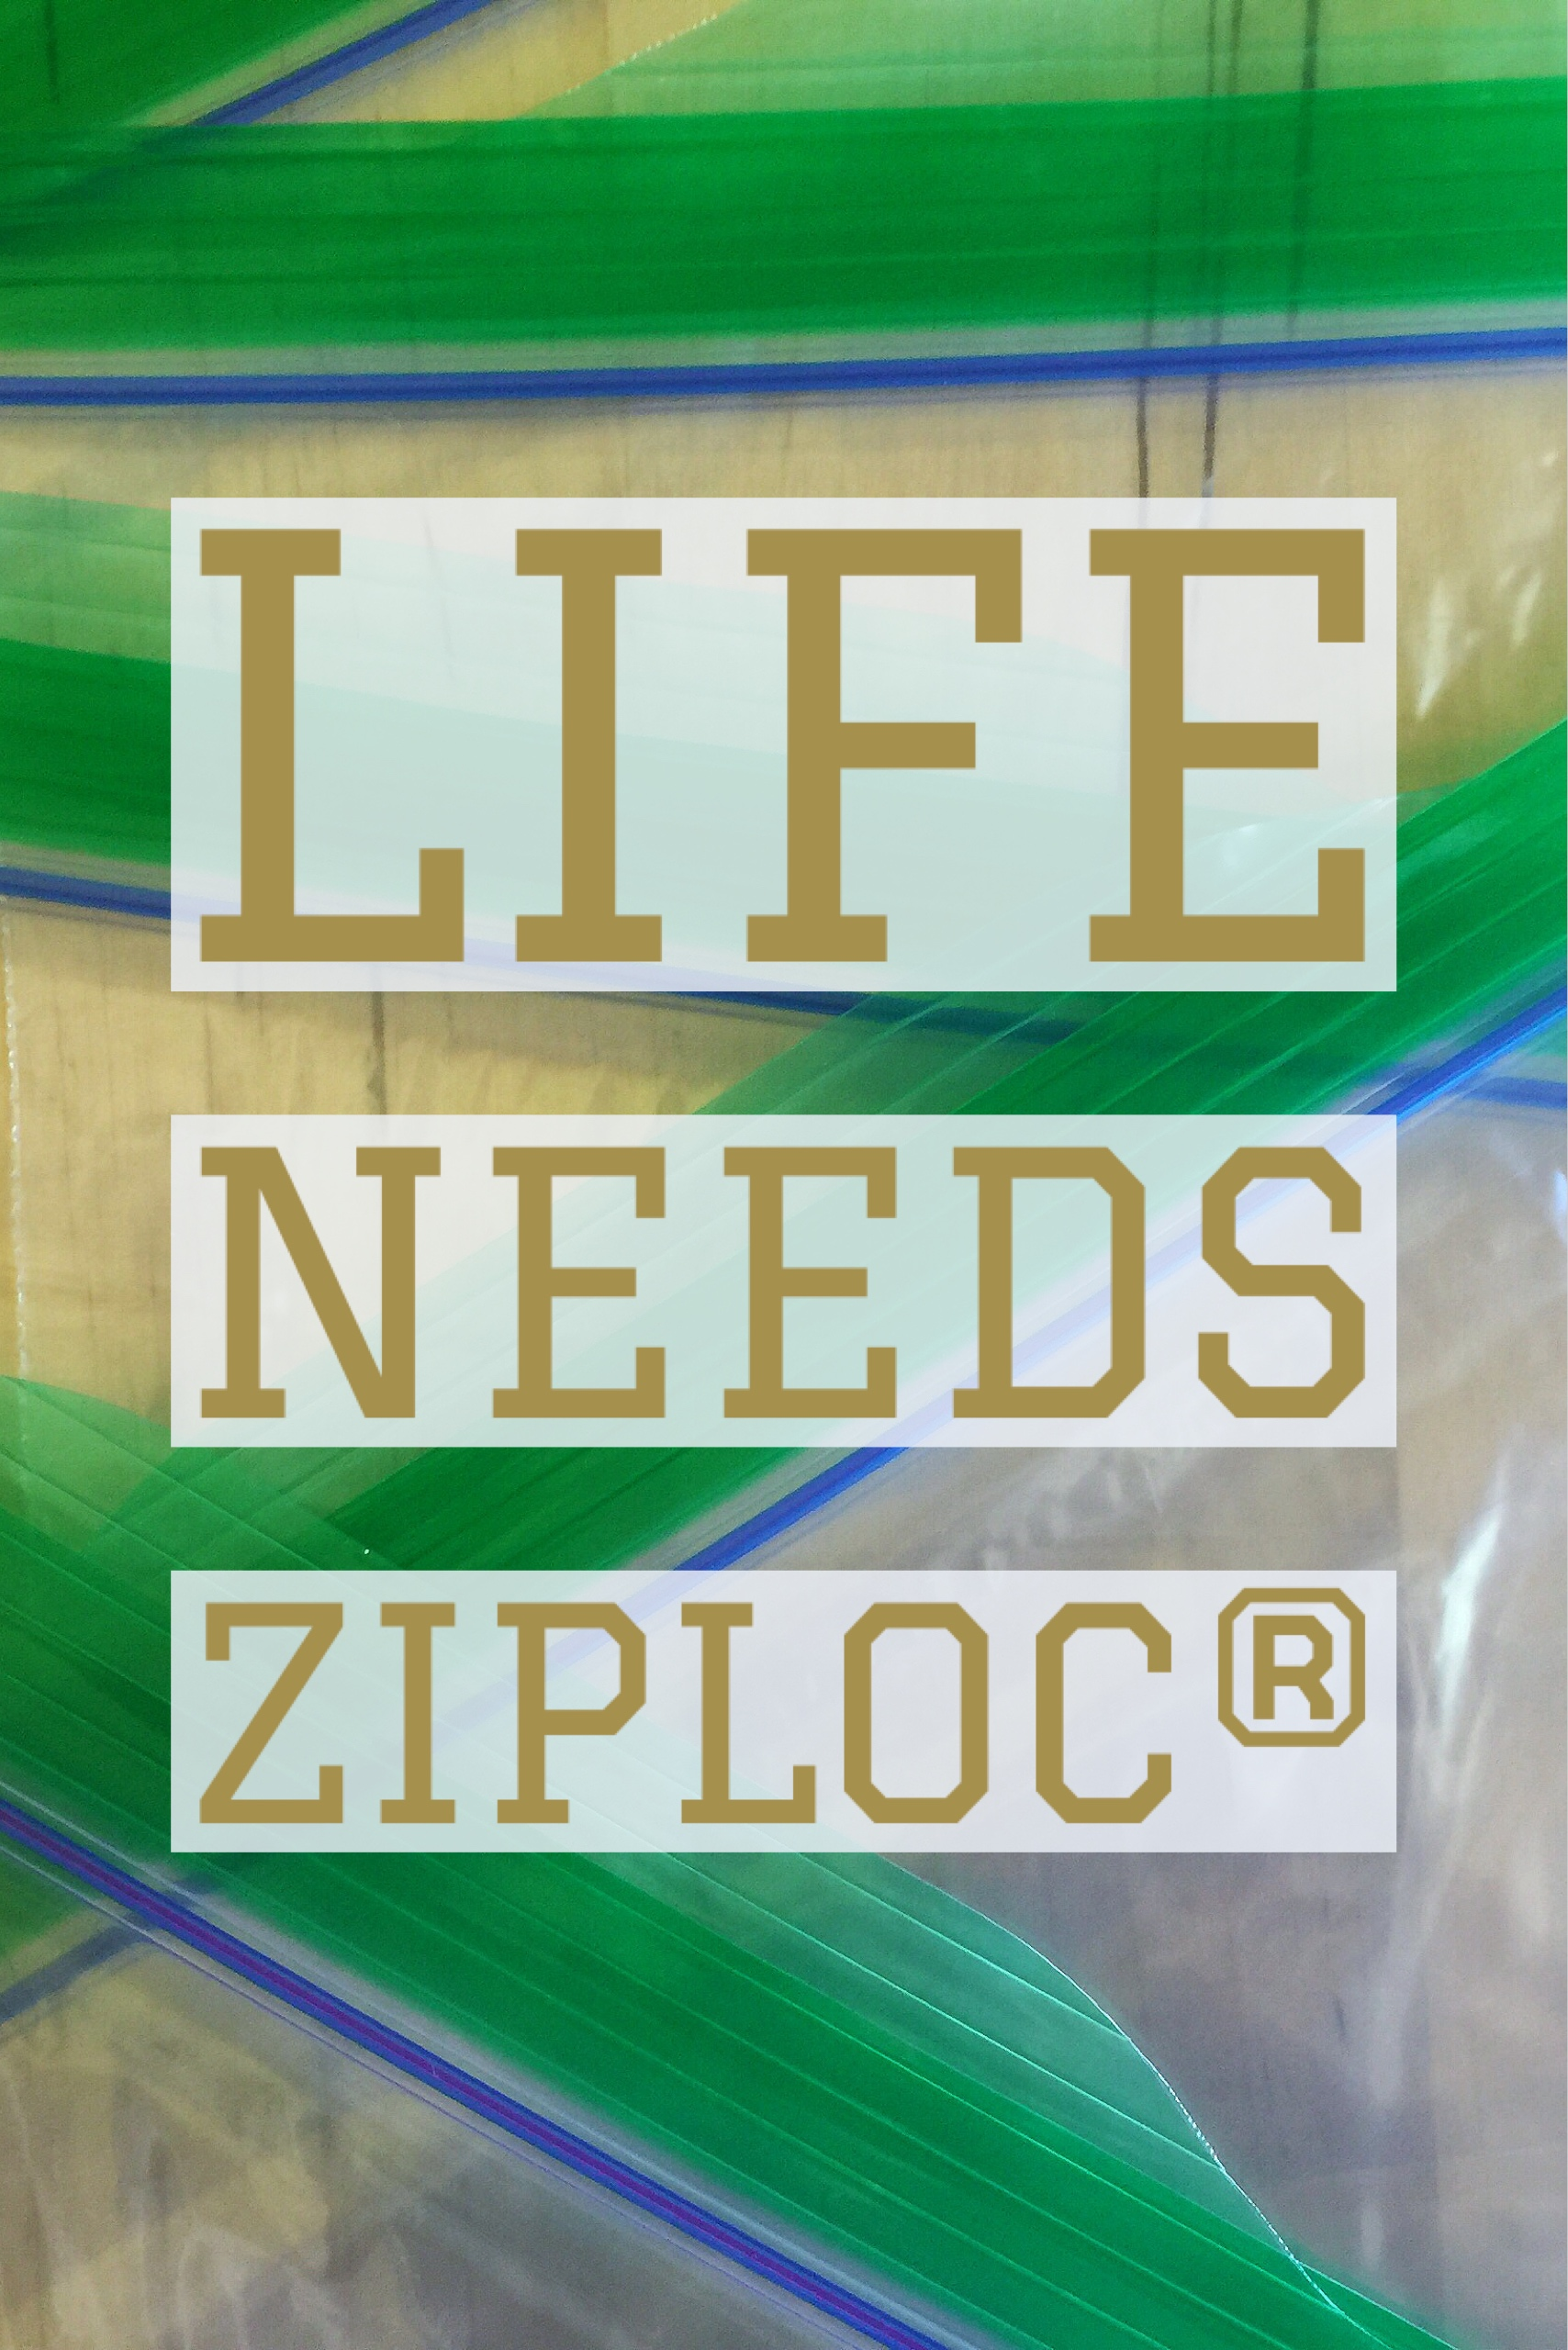 For those days when life just needs Ziploc®. See how I'm packing up more than sandwiches this school year with savvy back-to-school tips using these long-time family favorites!  #ZiplocBackToSchool #ad #SchoolTips